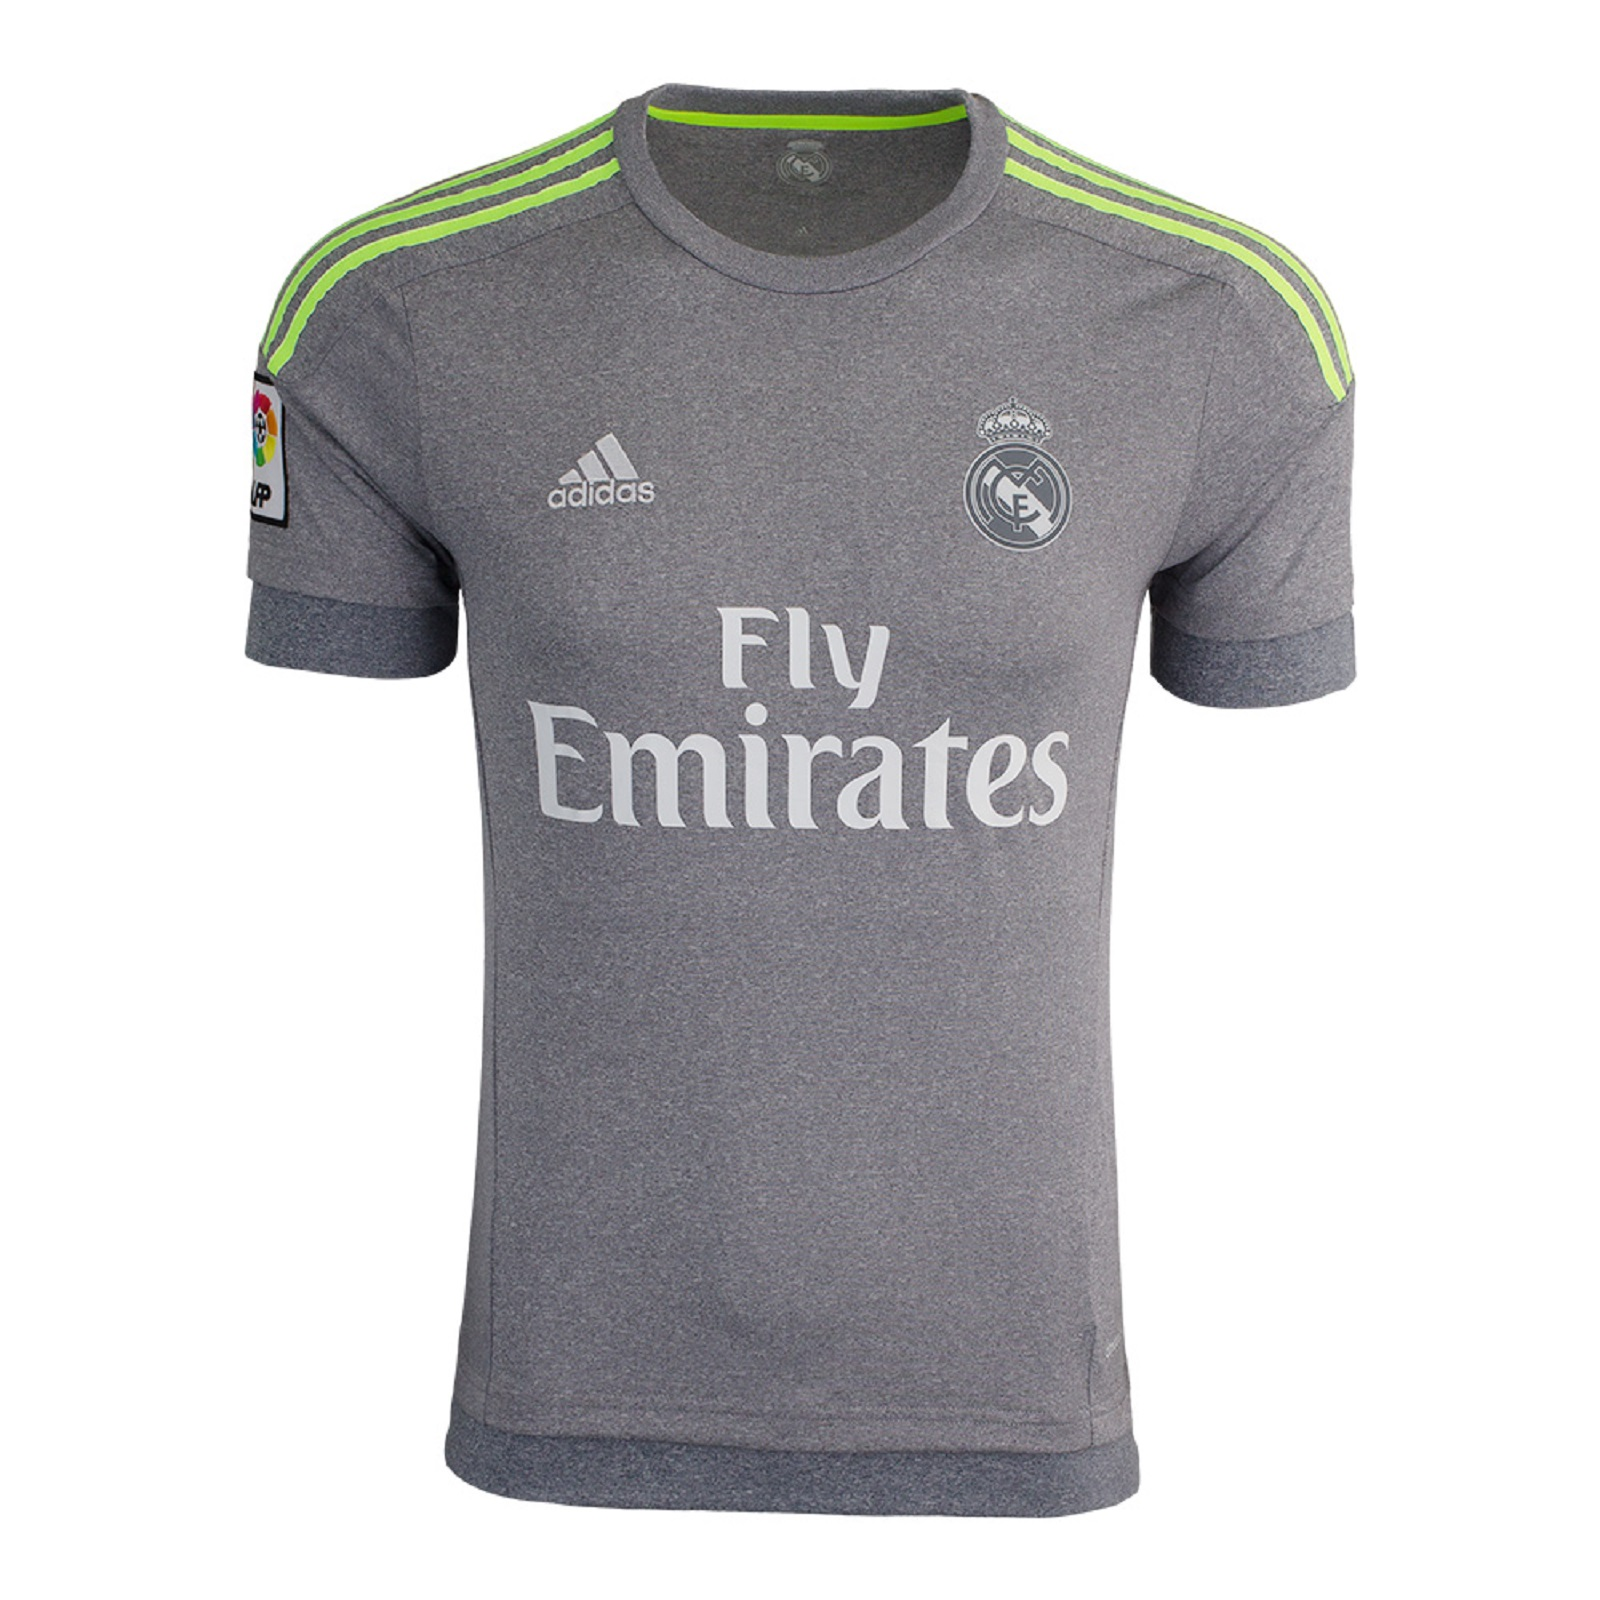 cec5e6c51 Real Madrid Official Football Gift Mens Adidas Away Kit Short Sleeve ...